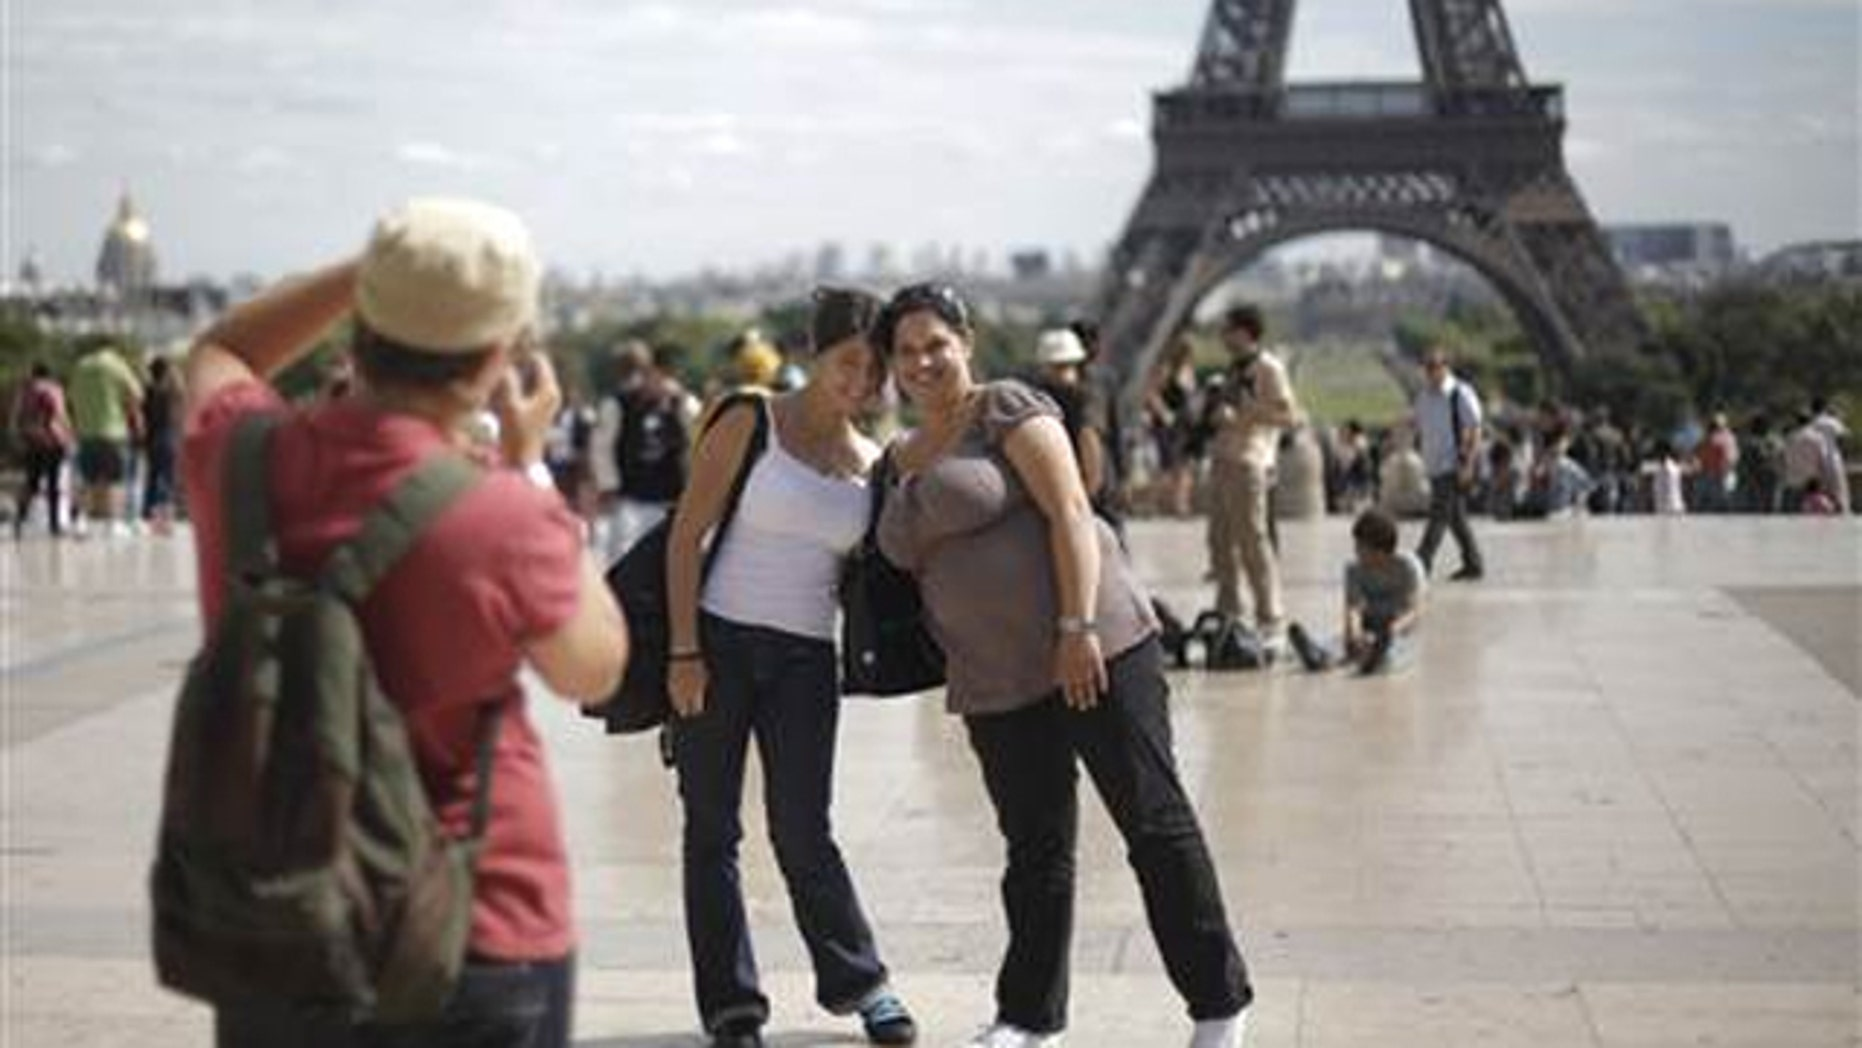 FILE: Tourists pose in front of the Eiffel Tower in Paris.